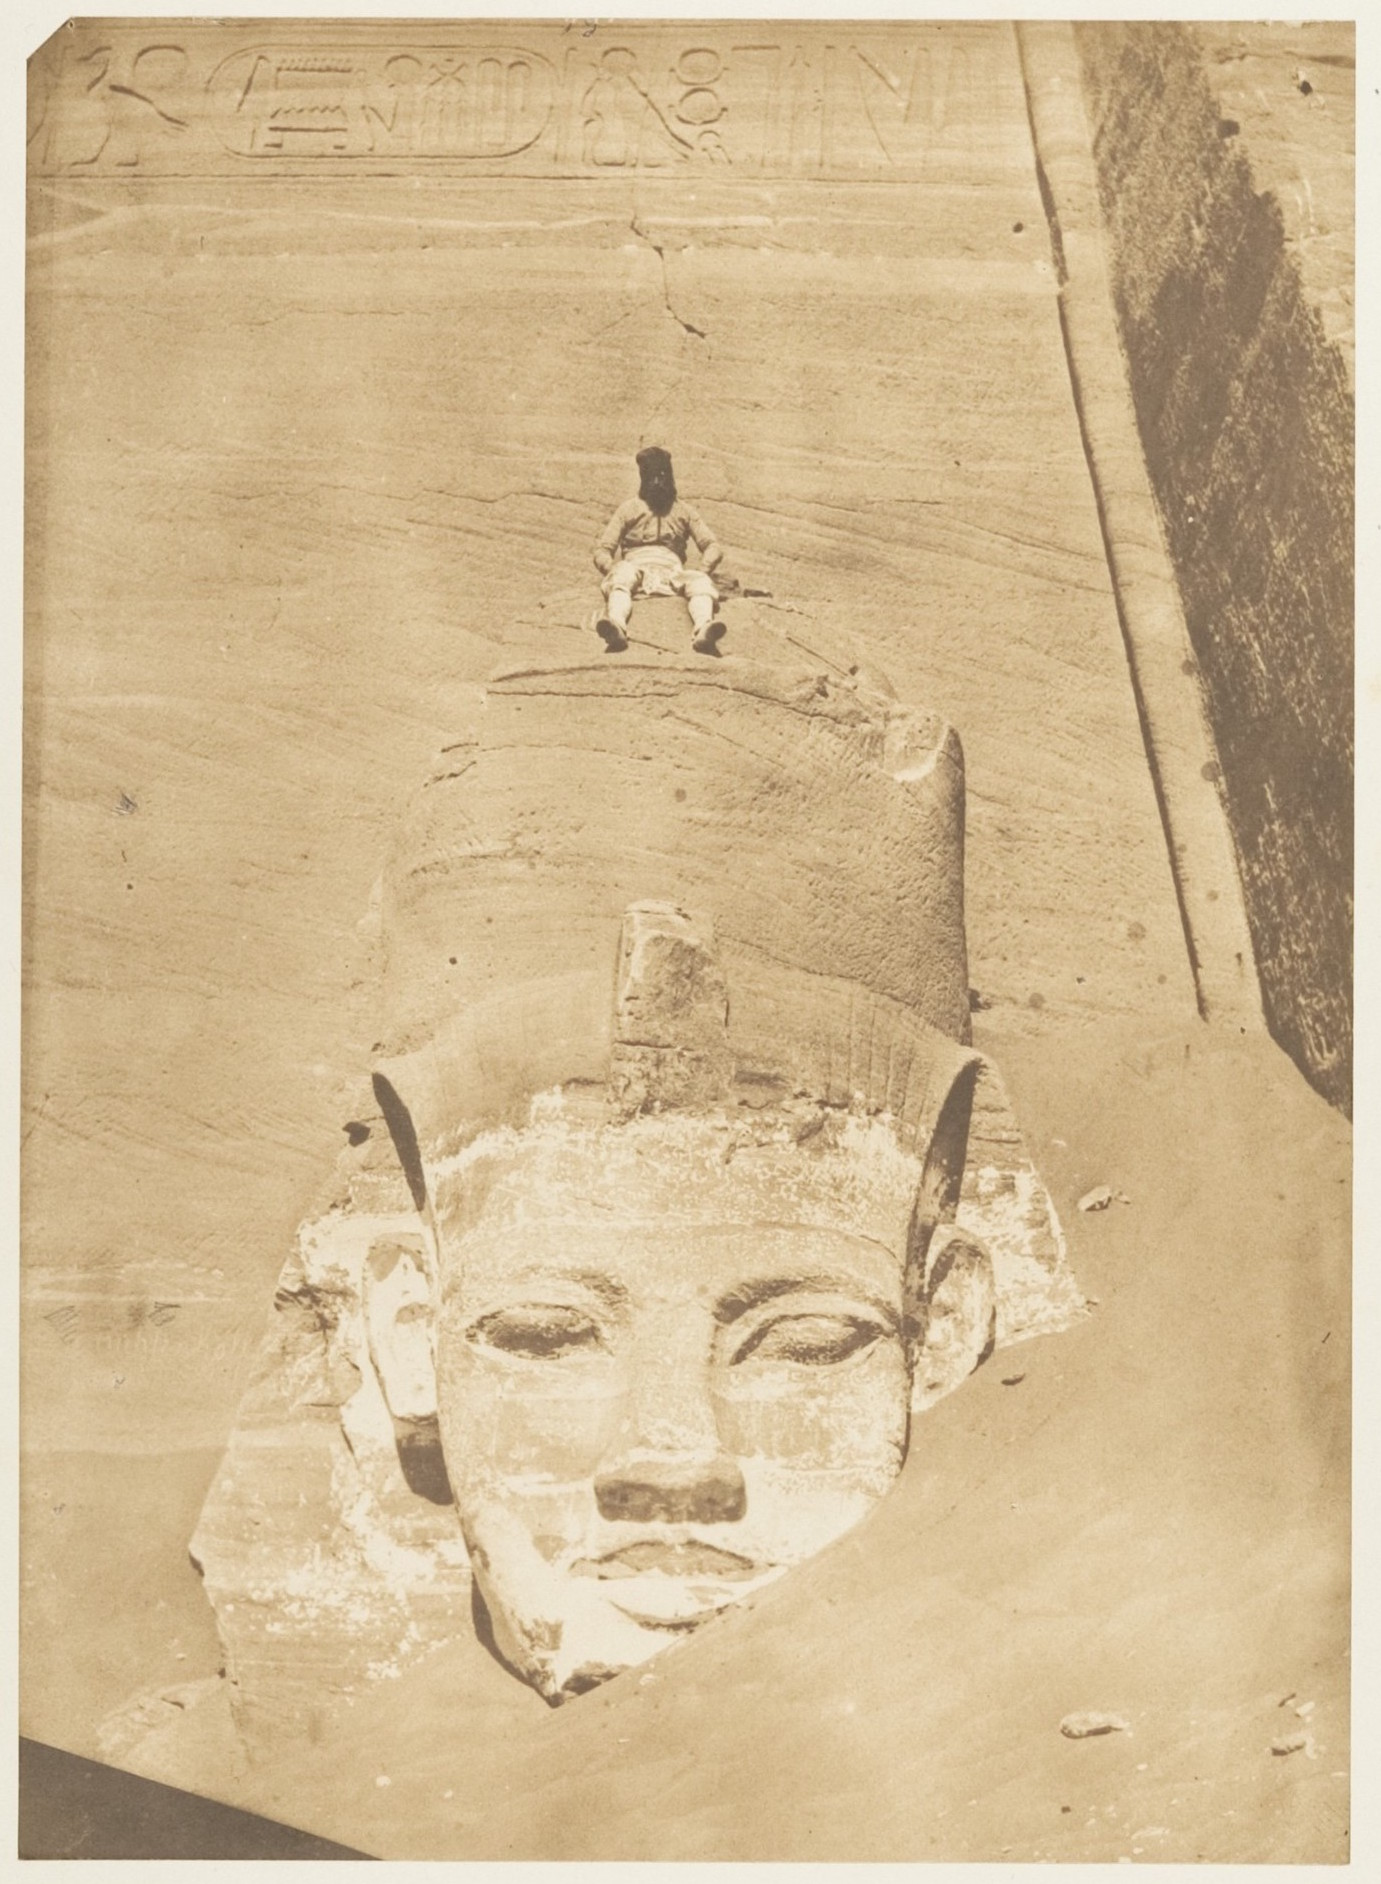 Fig. 6. Maxime du Camp, Westernmost Colossus of the Temple of Re, Abu Simbel, 1850, salted paper print from paper negative, 22.8 x 16.5cm. Gilman Collection, Gift of the Howard Gilman Foundation, 2005, Metropolitan Museum of Art, New York